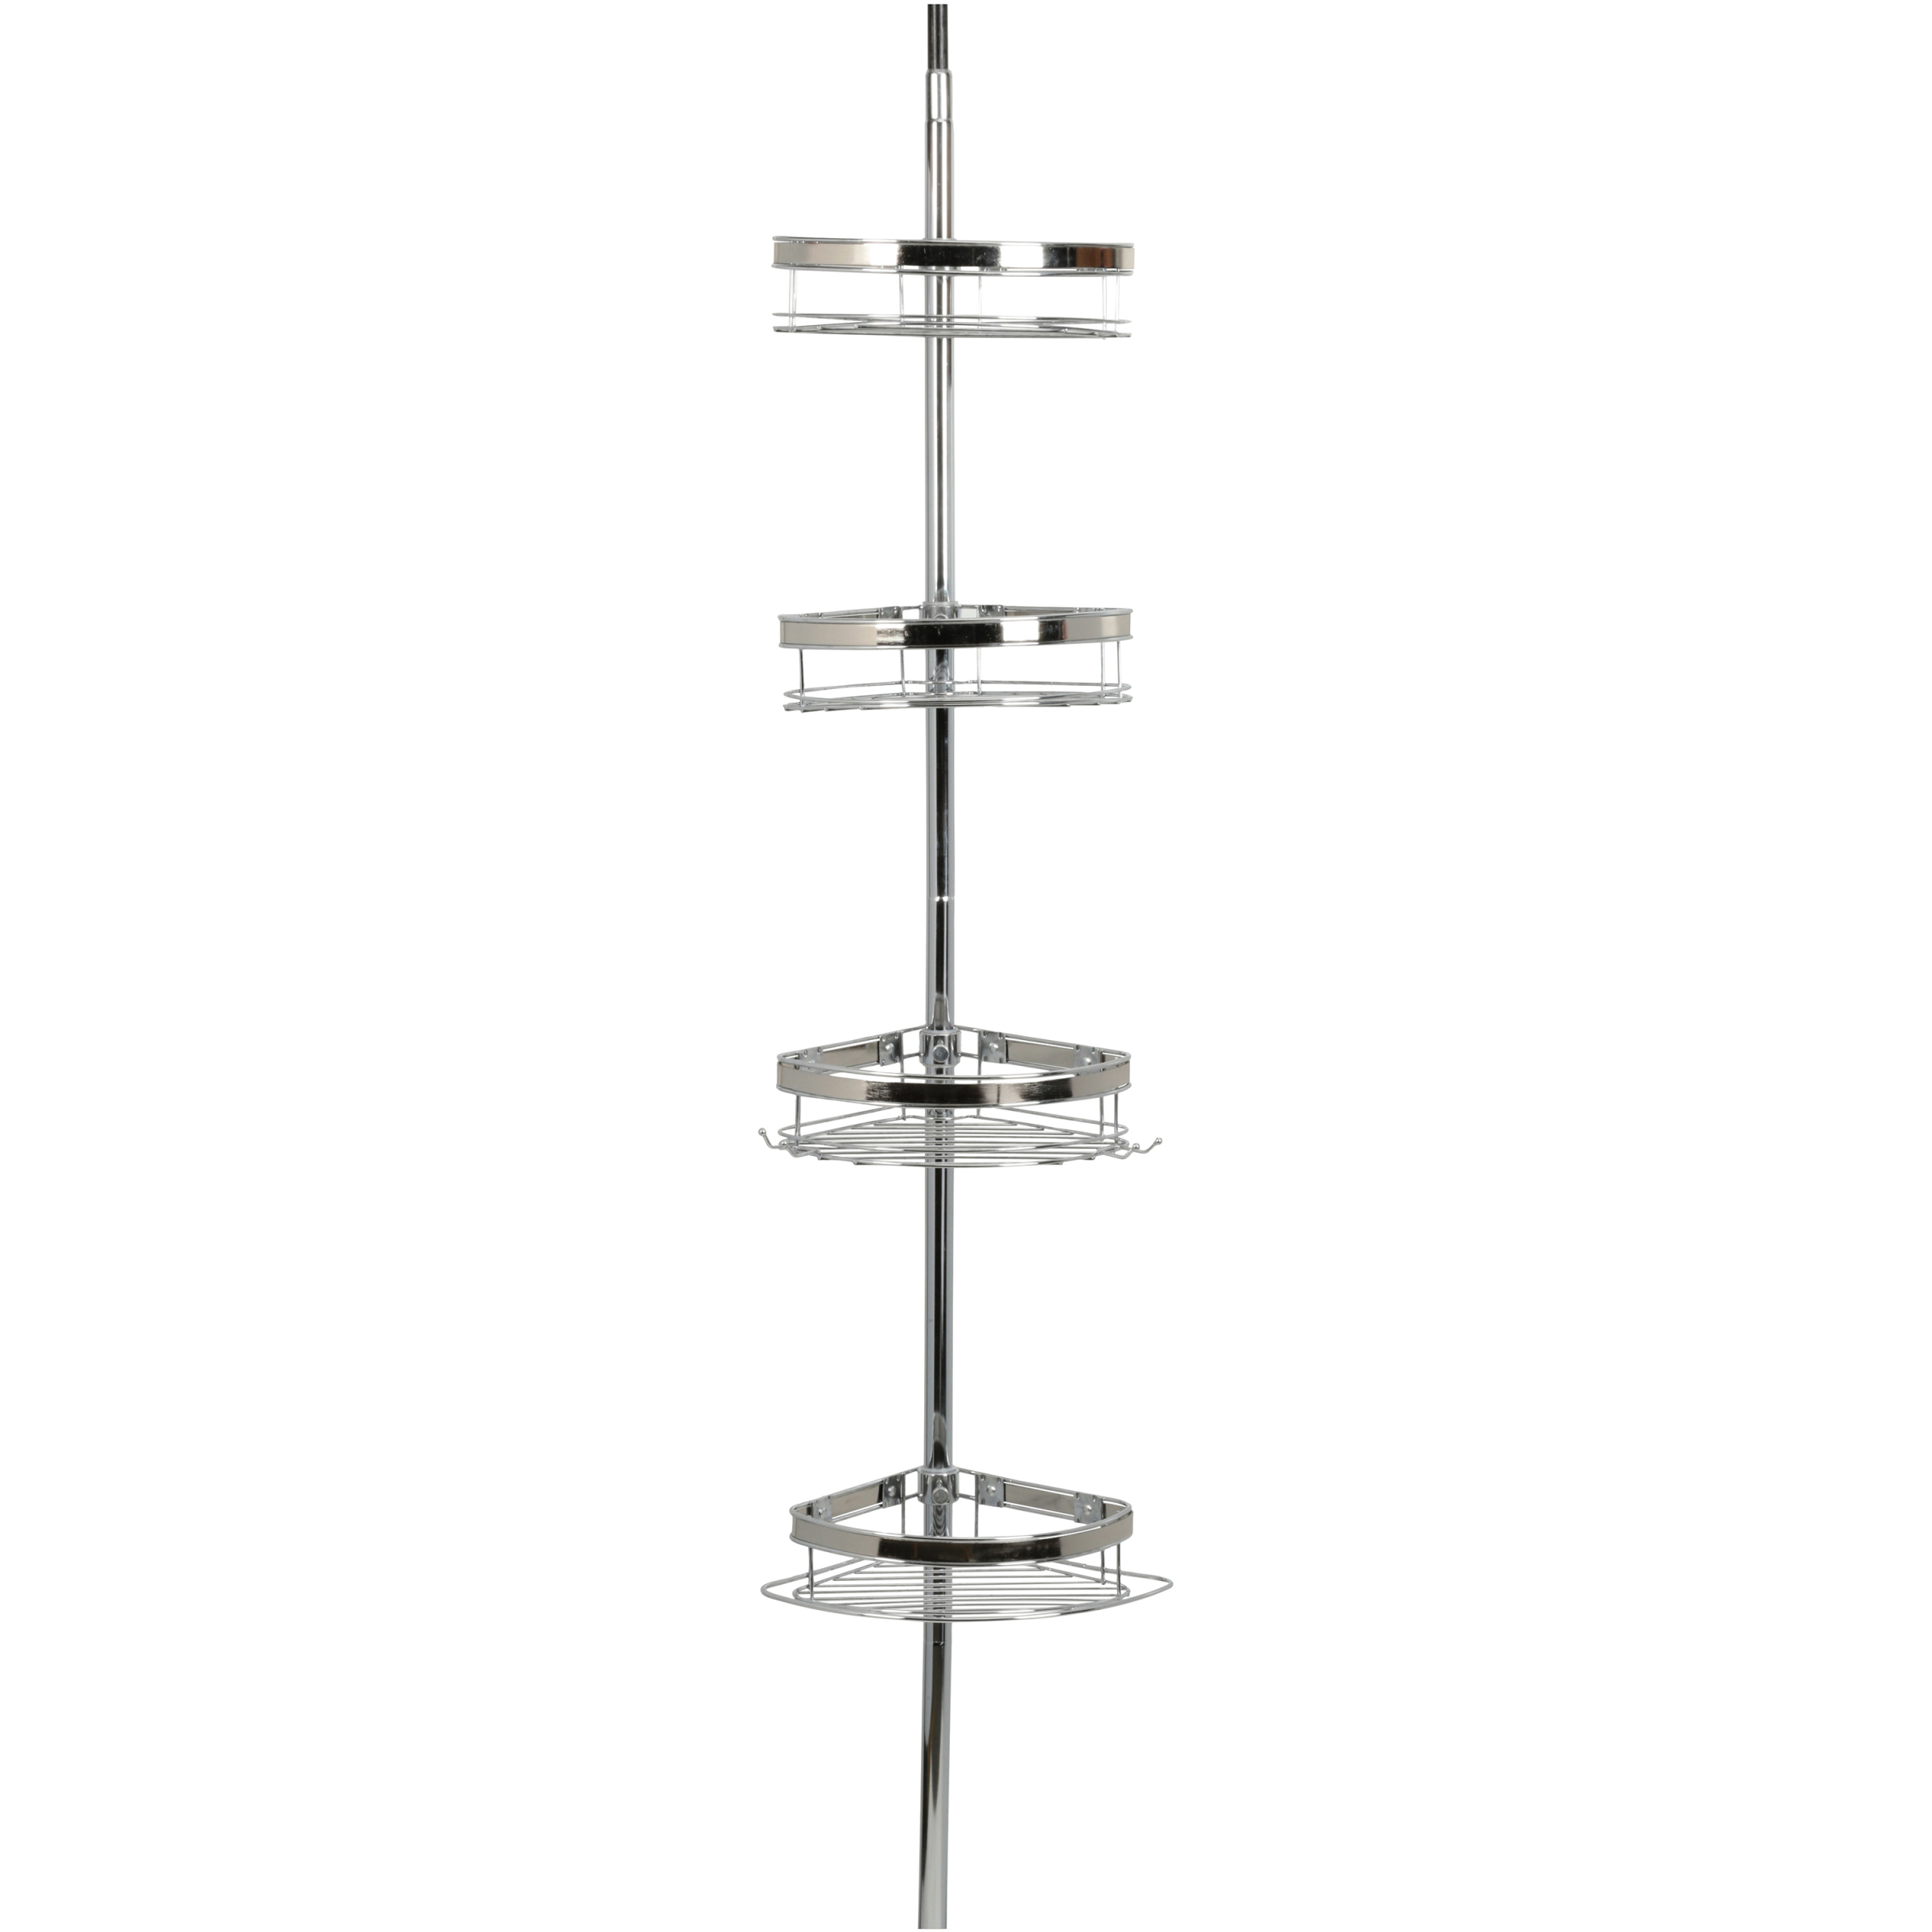 Zenna Home Tension Corner Pole Caddy, Chrome with Brushed Nickel Accents